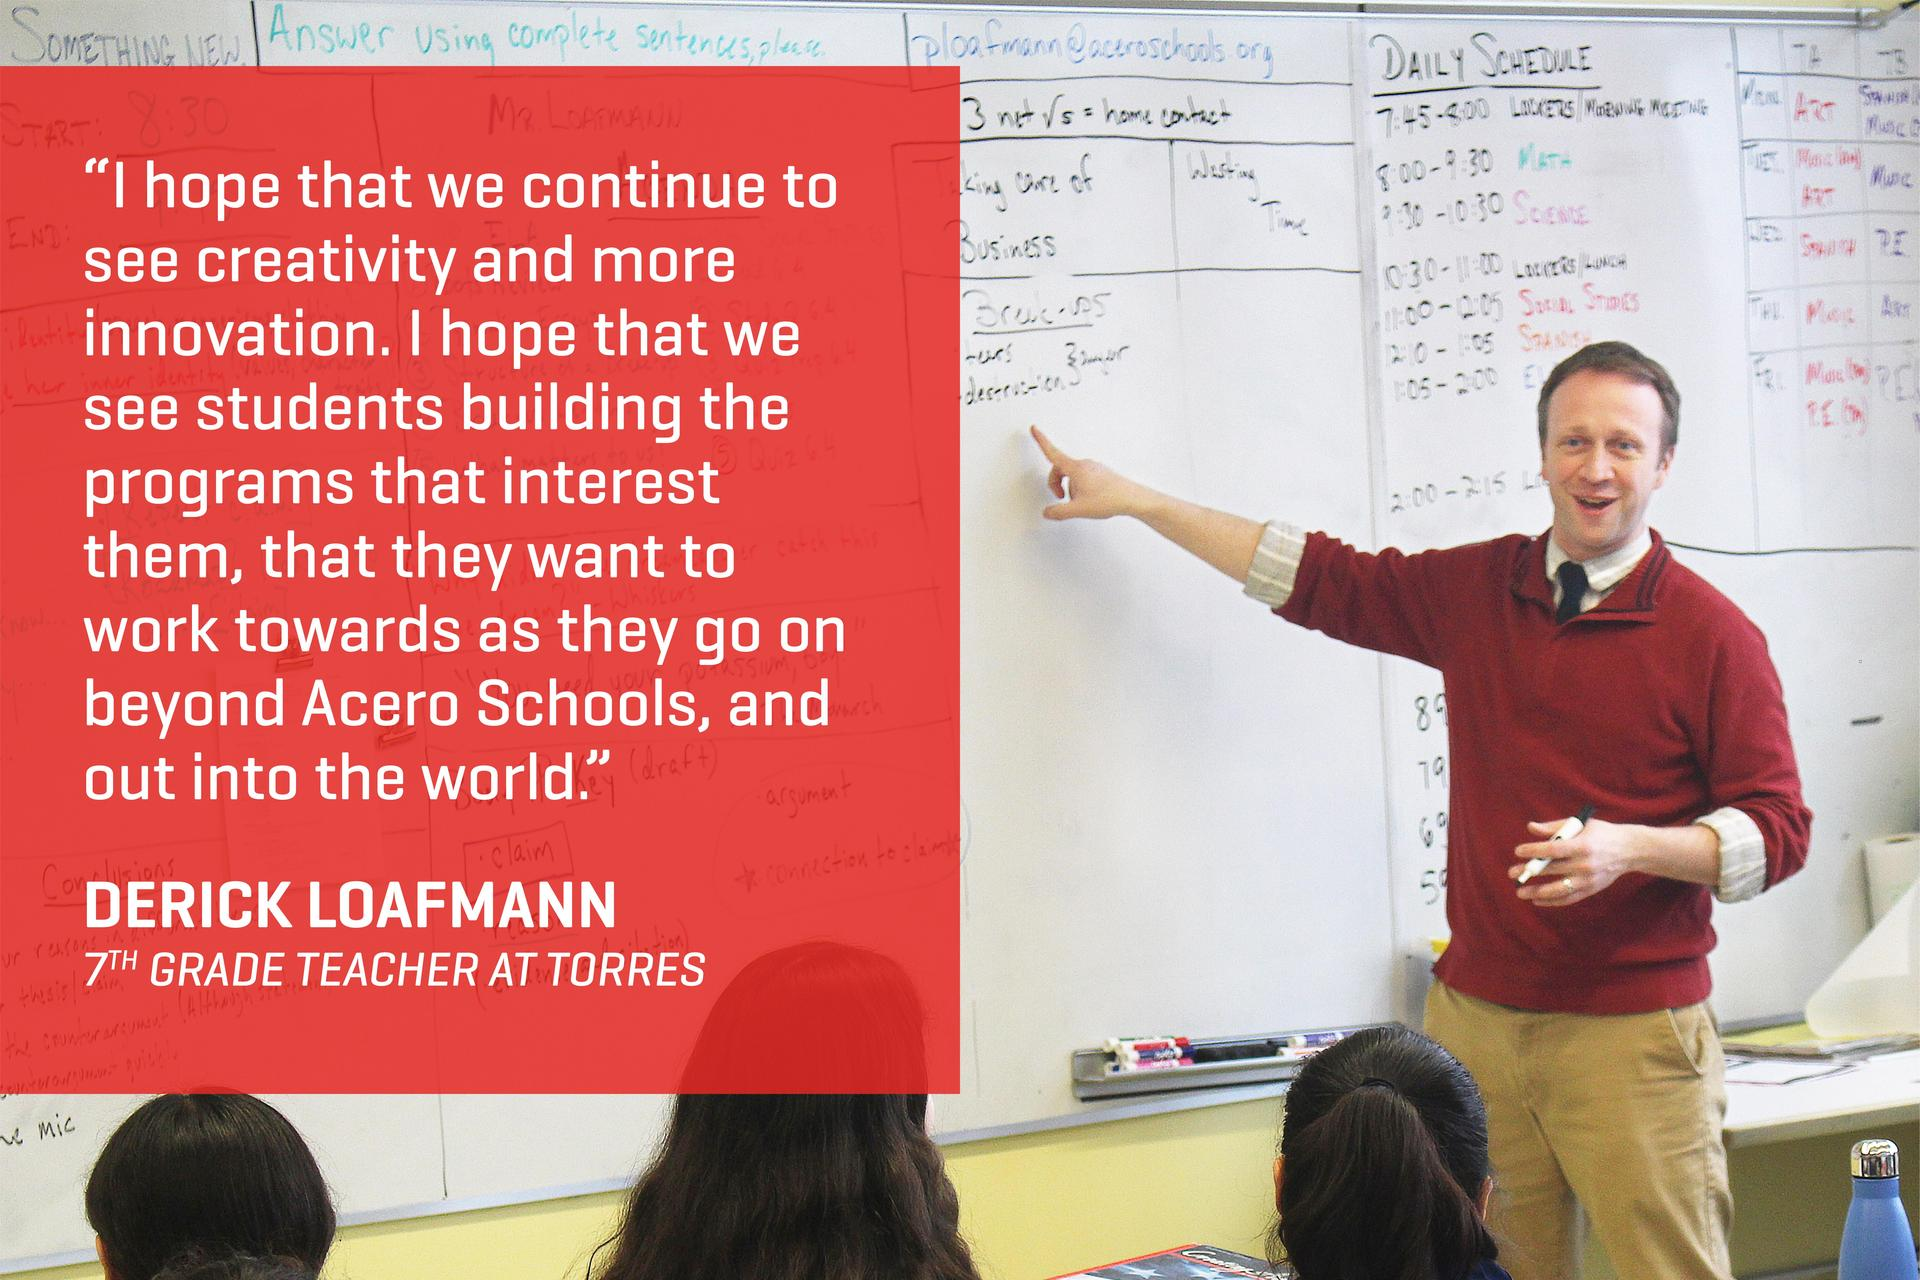 Another teacher explains what he hopes his students will obtain from Acero Schools.